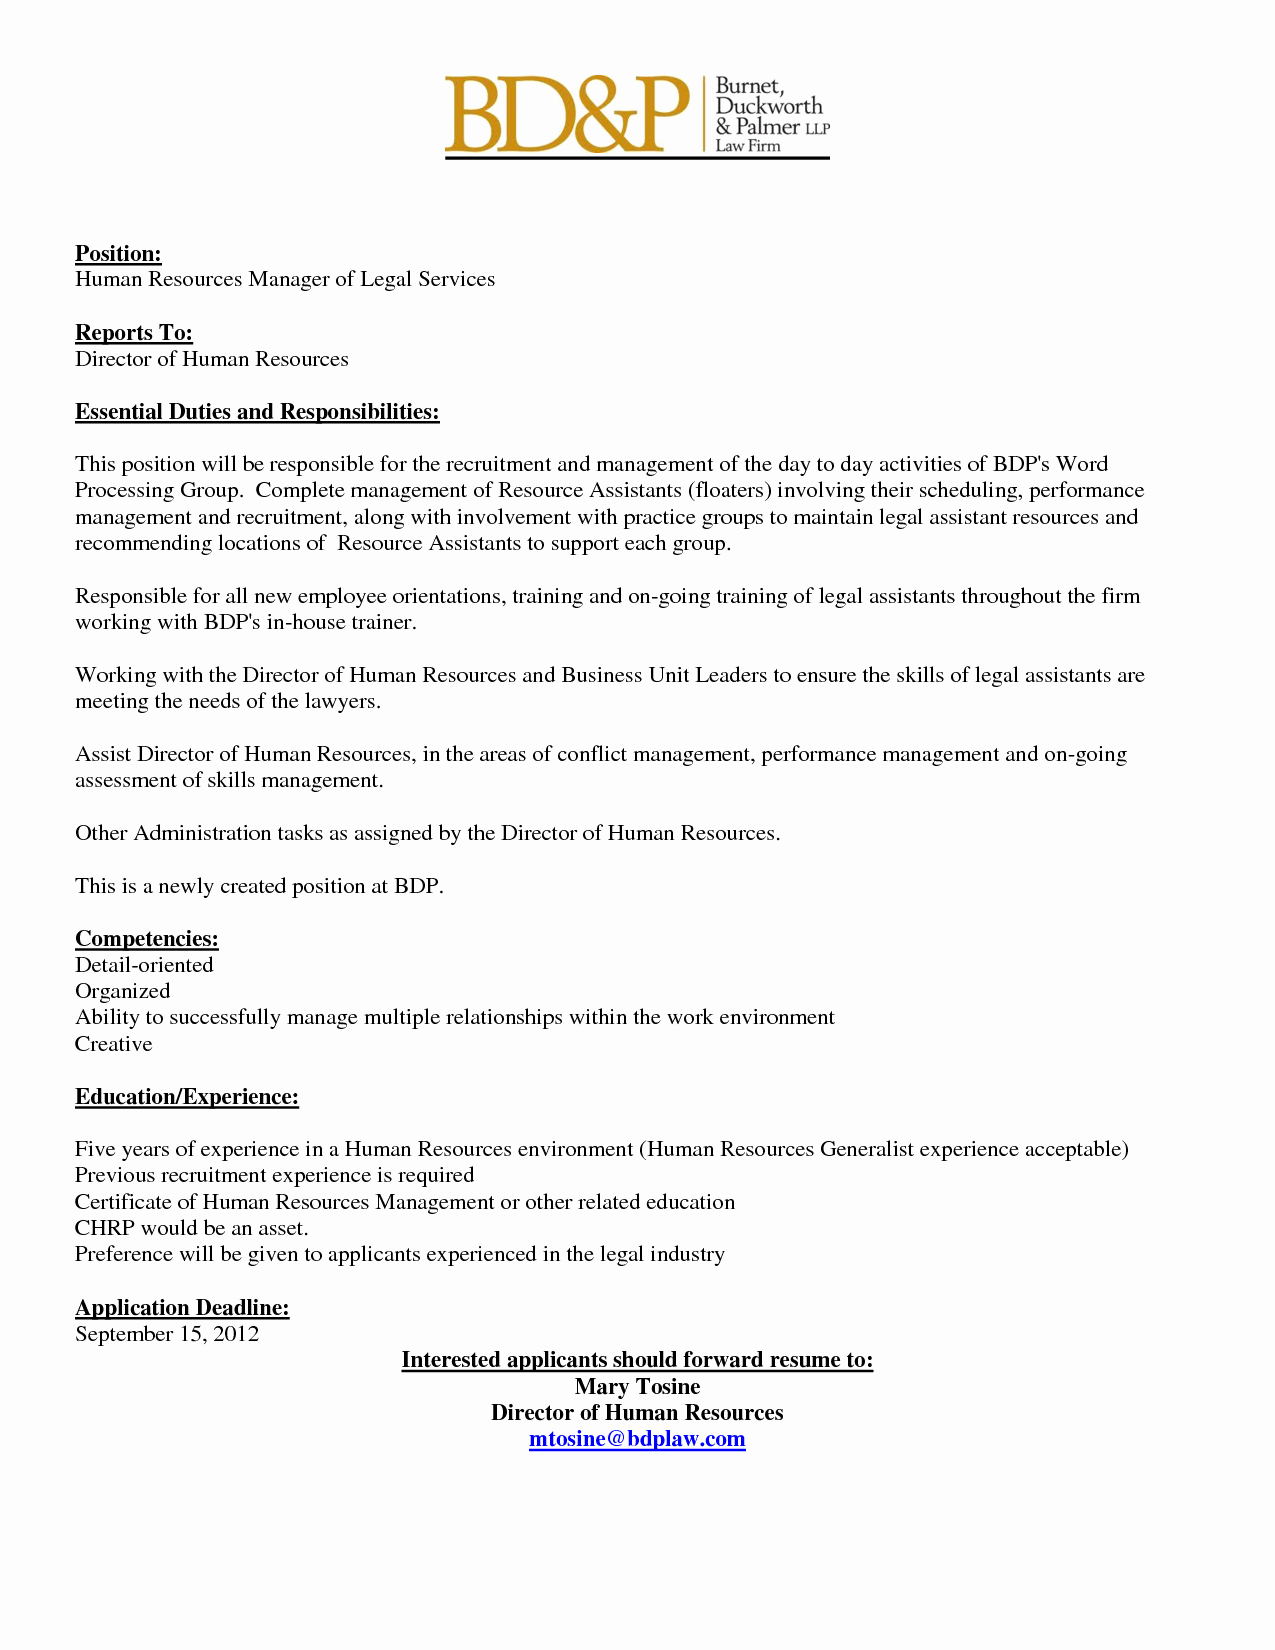 Job Posting Template Word Fresh Internal Job Posting Template